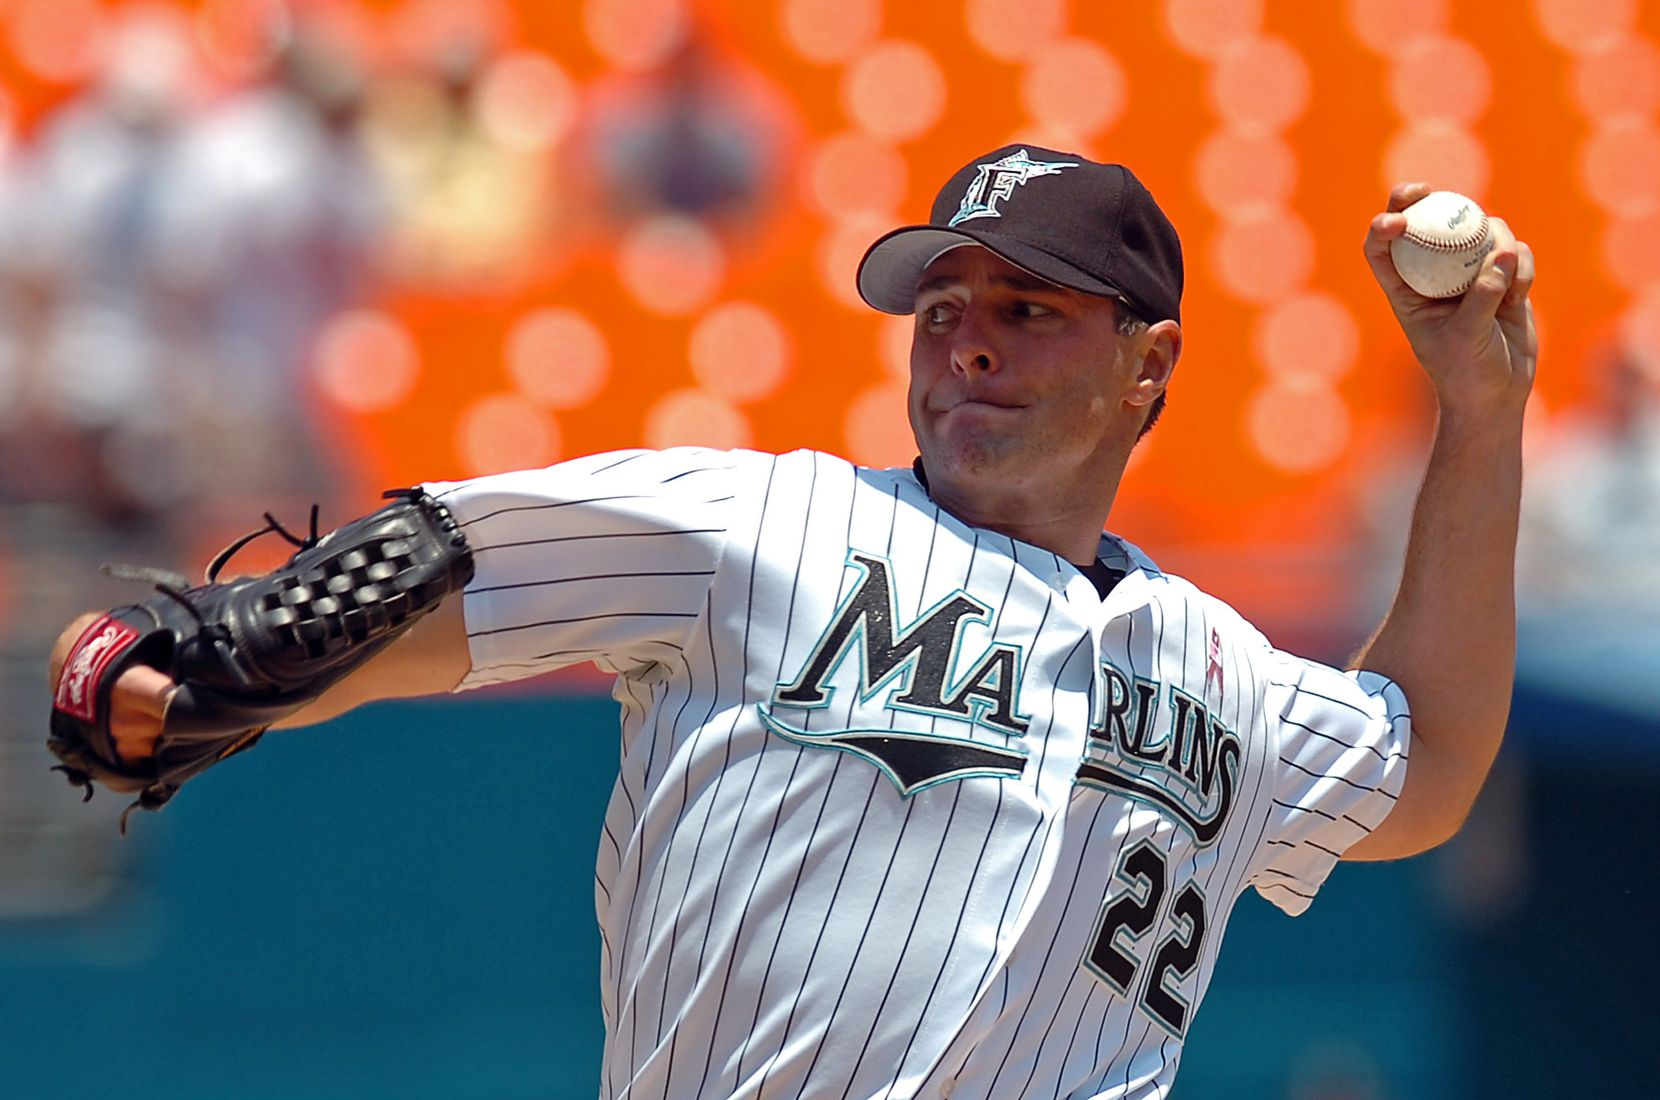 Florida Marlins starting pitcher Al Leiter throws during the first inning against the Colorado Rockies Sunday, May 8, 2005, in Miami.